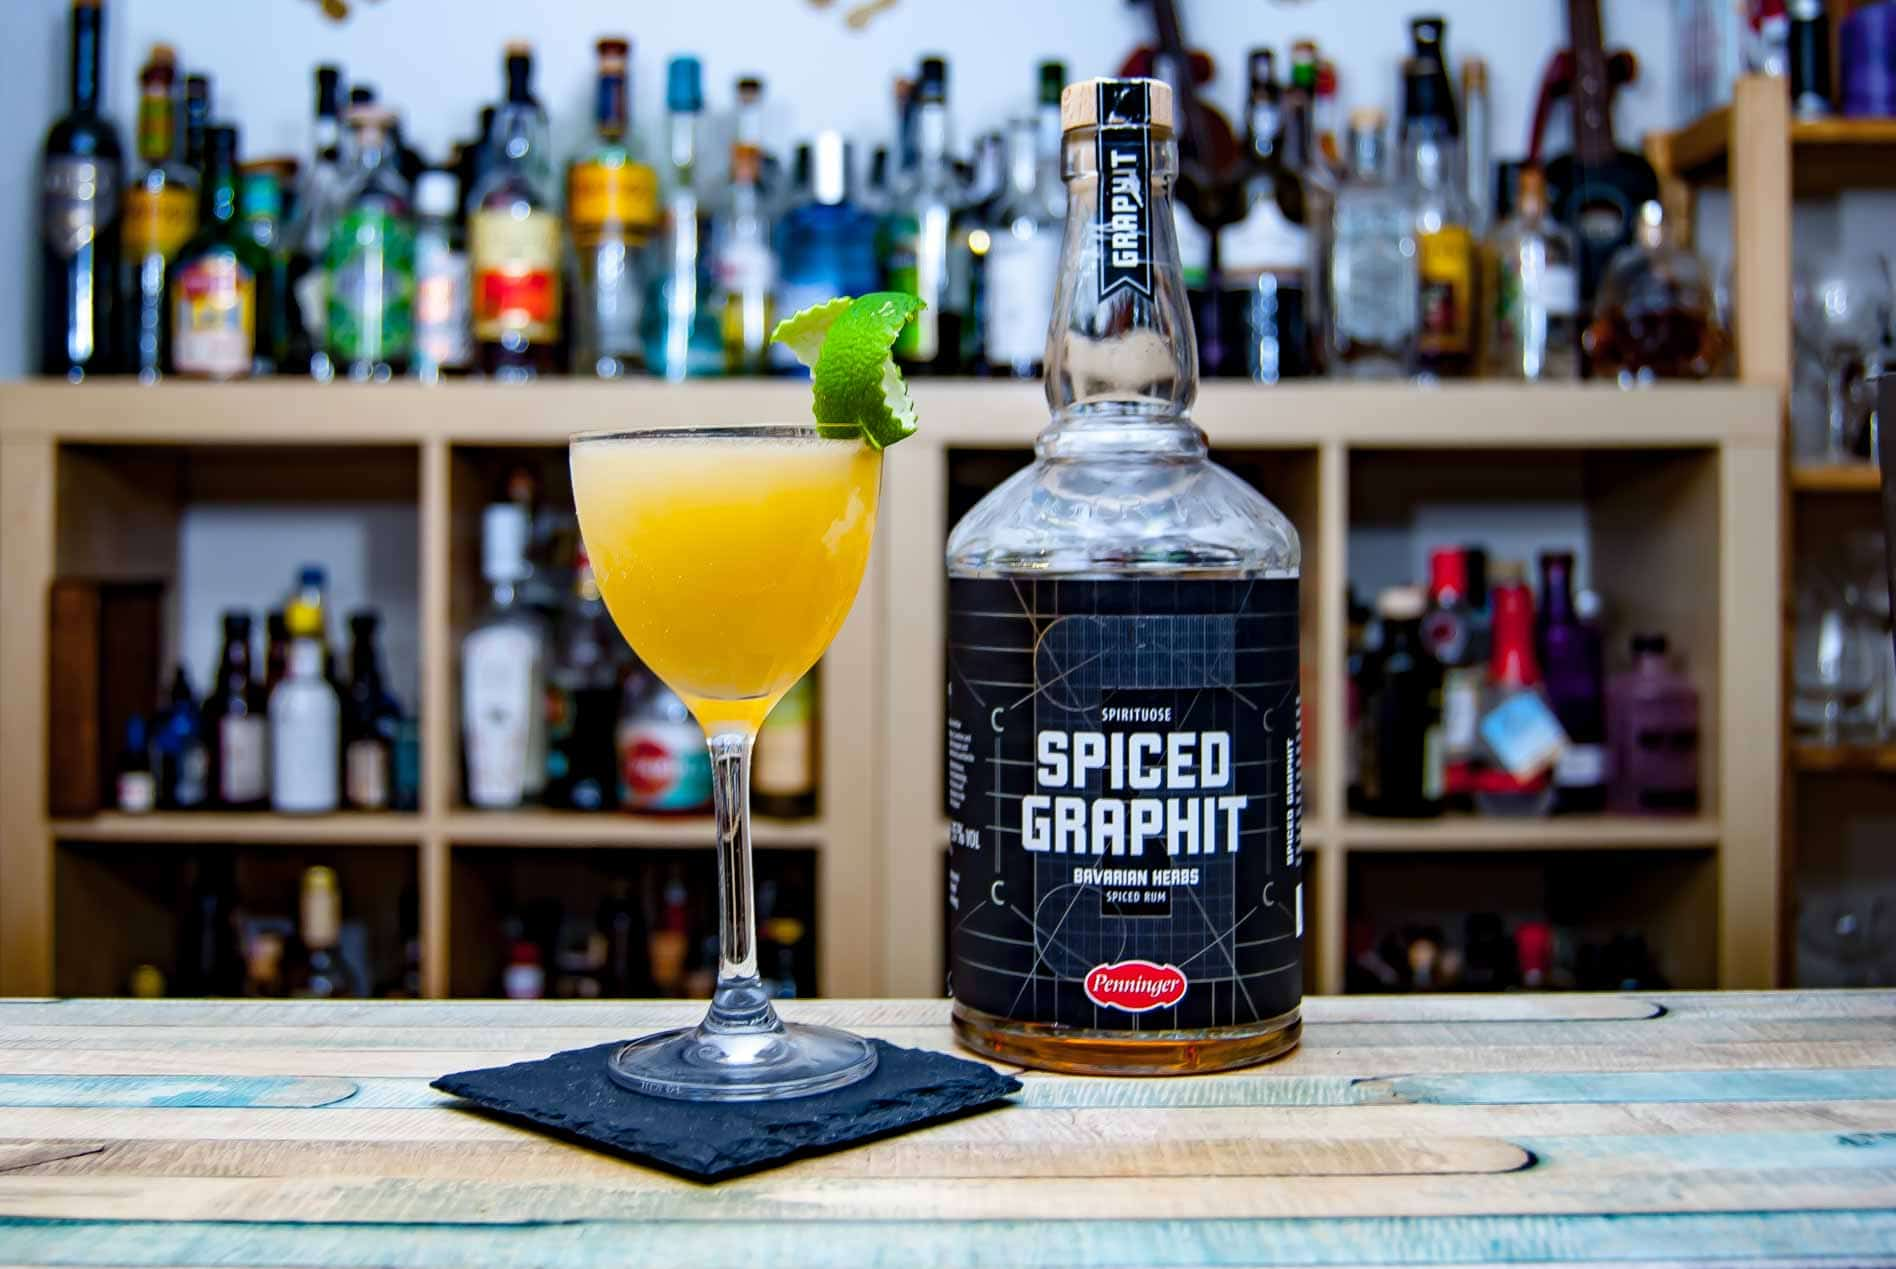 Penninger Graphit Spiced in unserem Daiquiri-Twist Battle of the herbs.